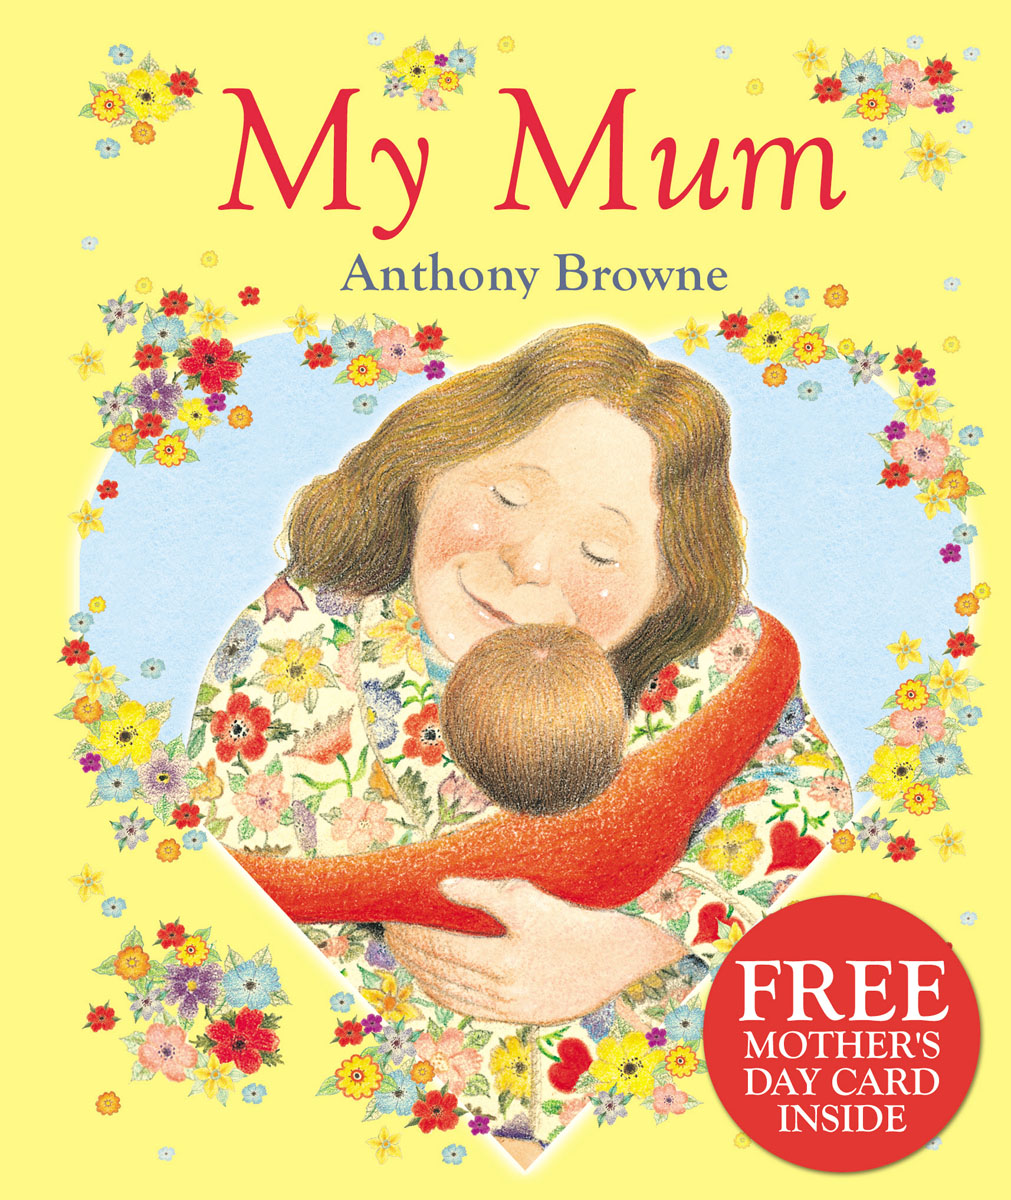 My Mum my mum by me a dodle book all about my mum